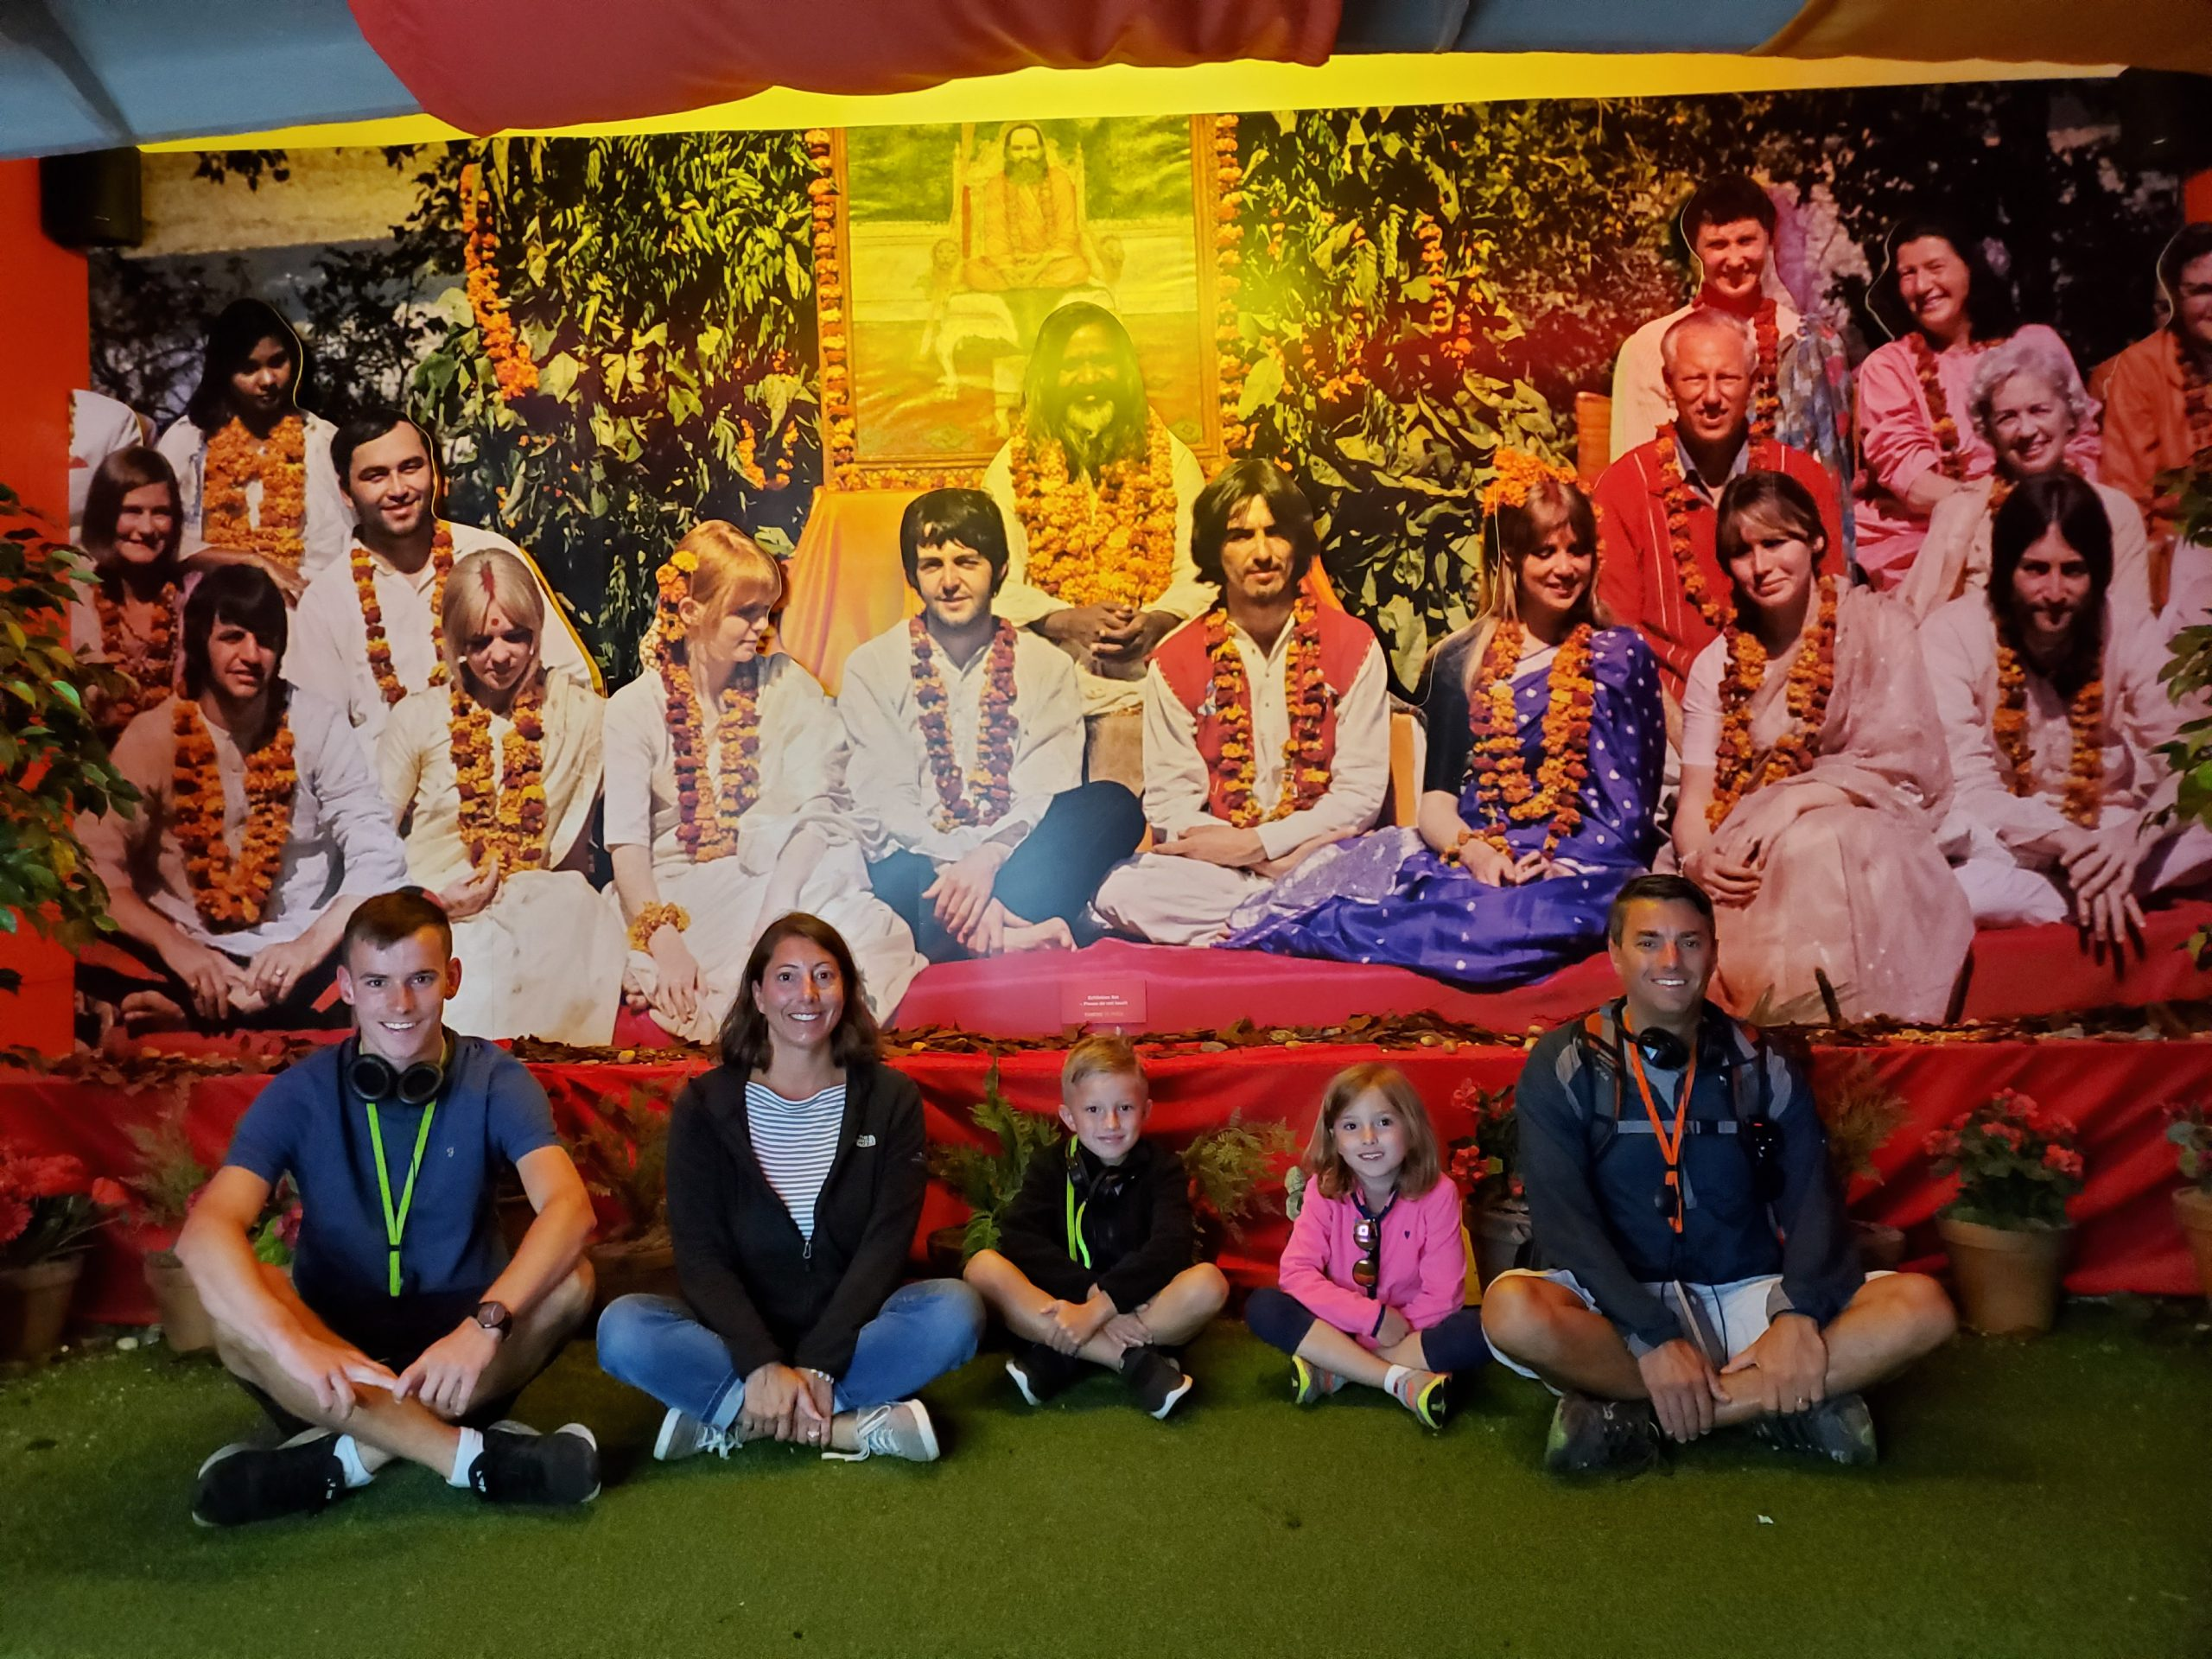 Cernys' Journeys: The Beatles Story: The Beatles in India- Liverpool, England, UK #2